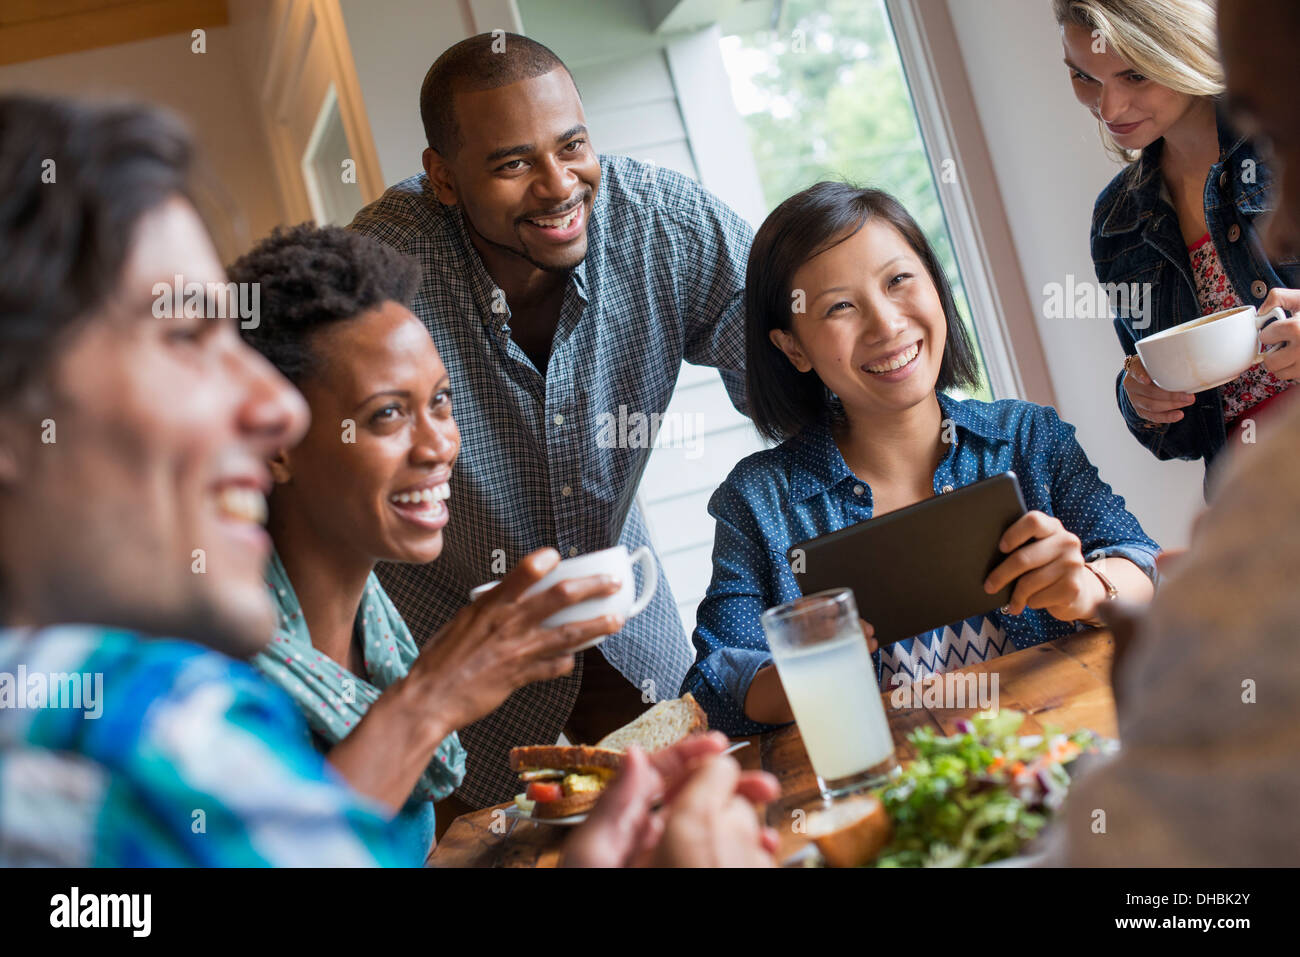 A group of people meeting in a cafe. Using digital tablets and smart phones. - Stock Image